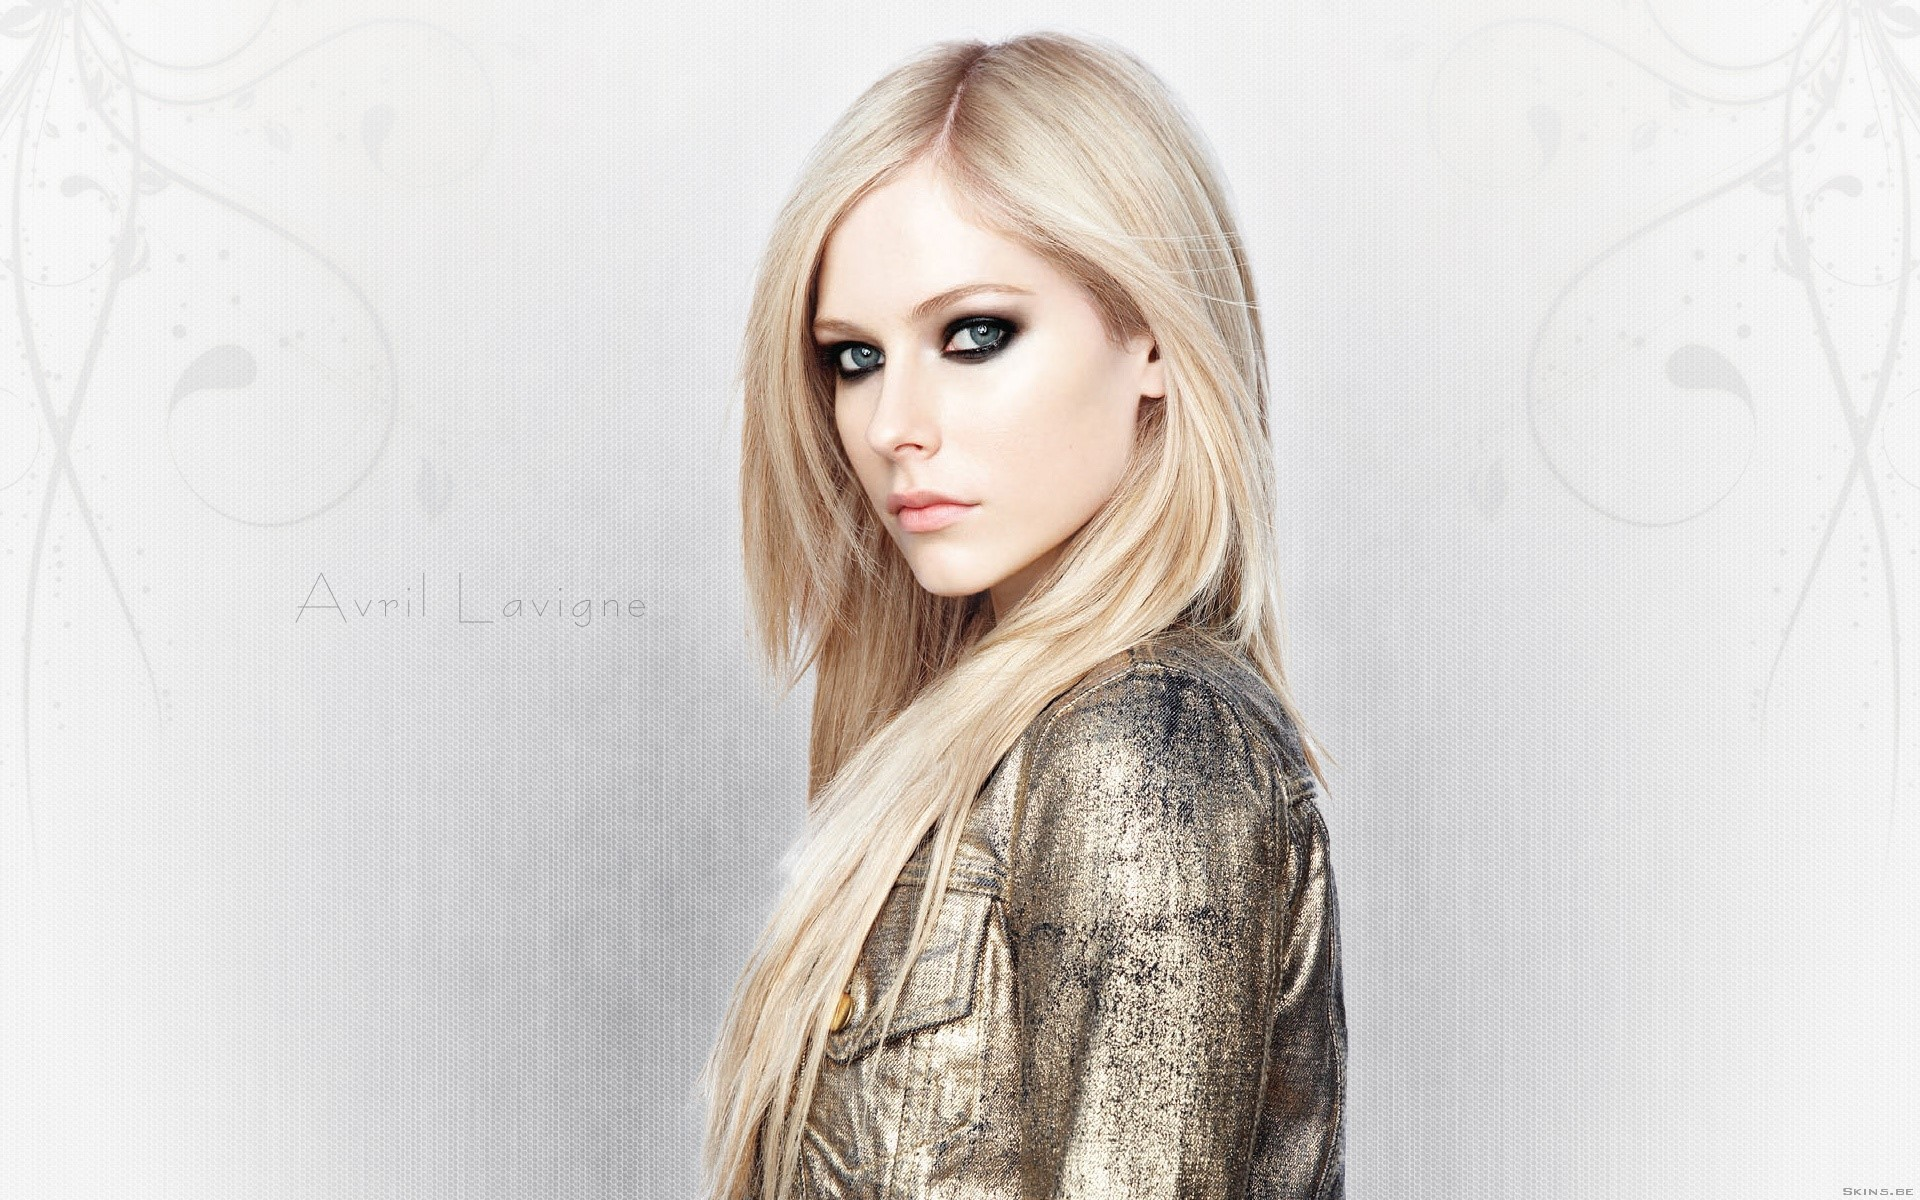 Avril Lavigne Wallpapers 2